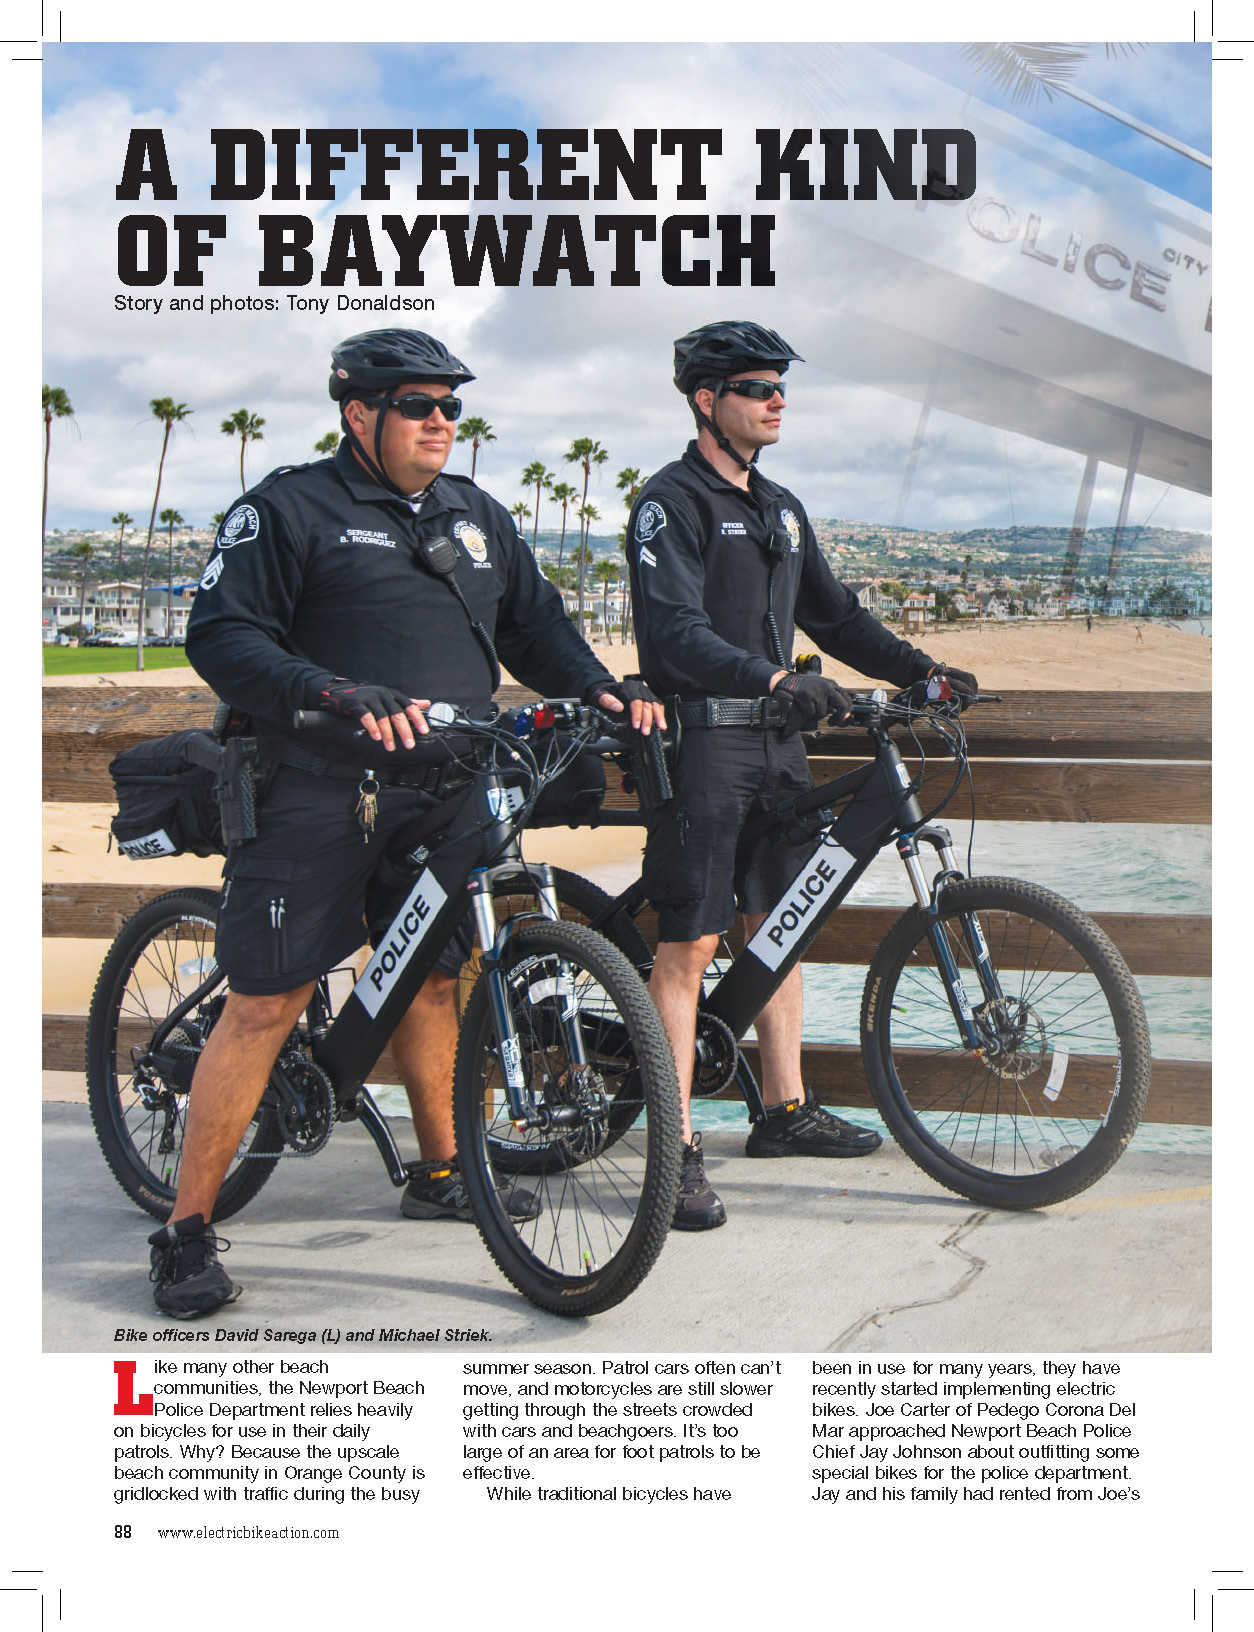 A Different Kind of Baywatch: E-Bikes for Law Enforcement